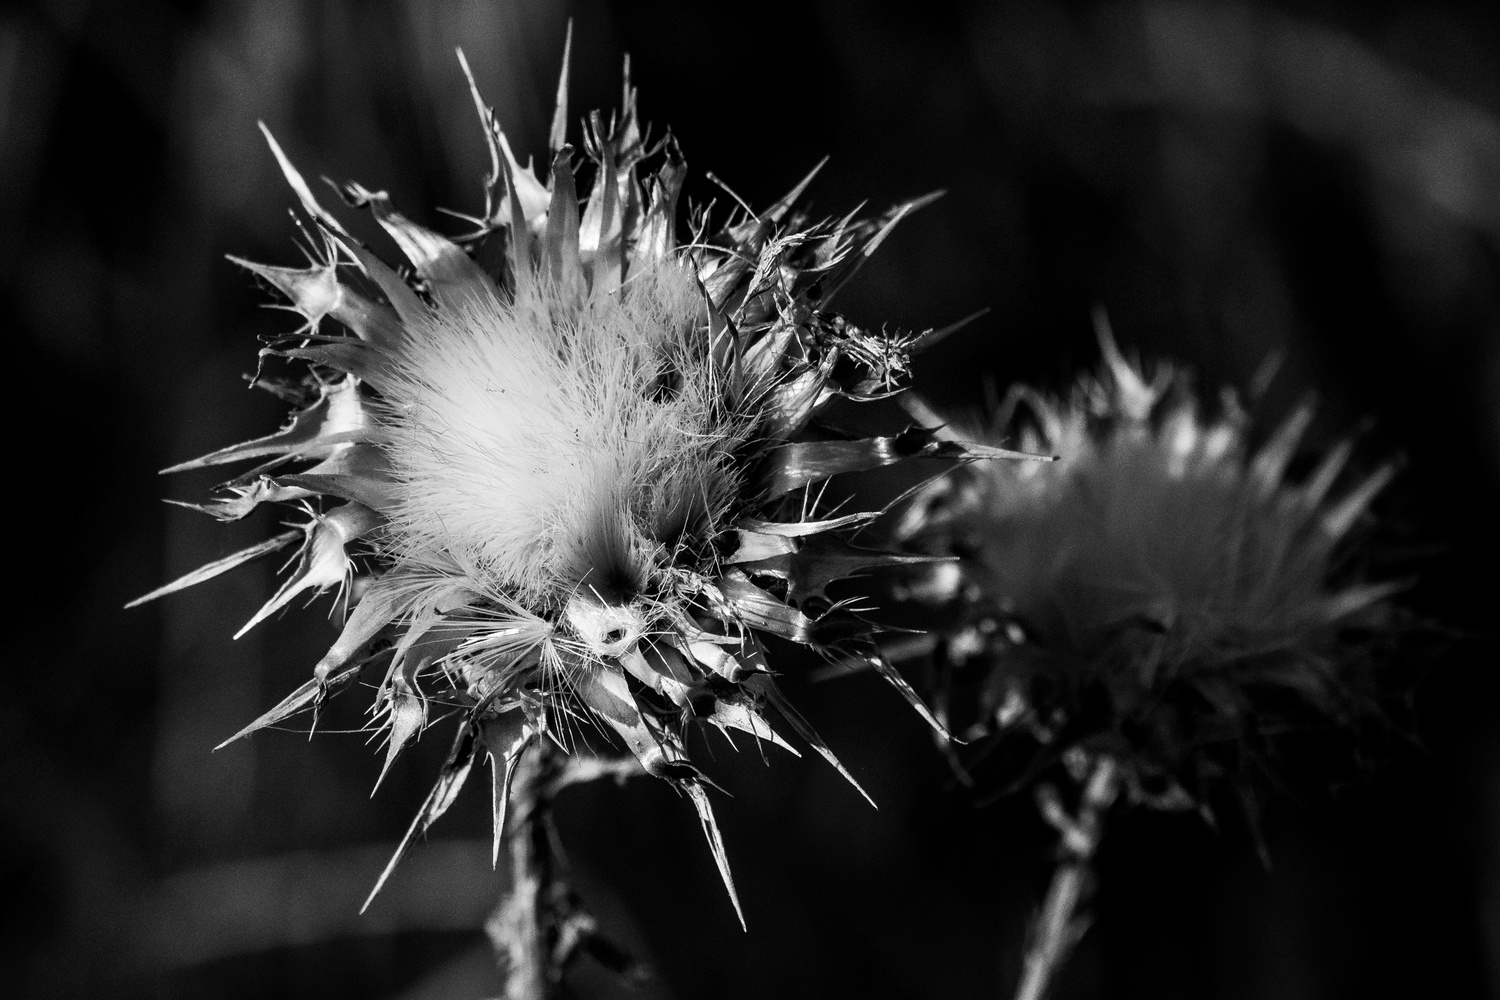 Dying Thistle by Jacob Pelley